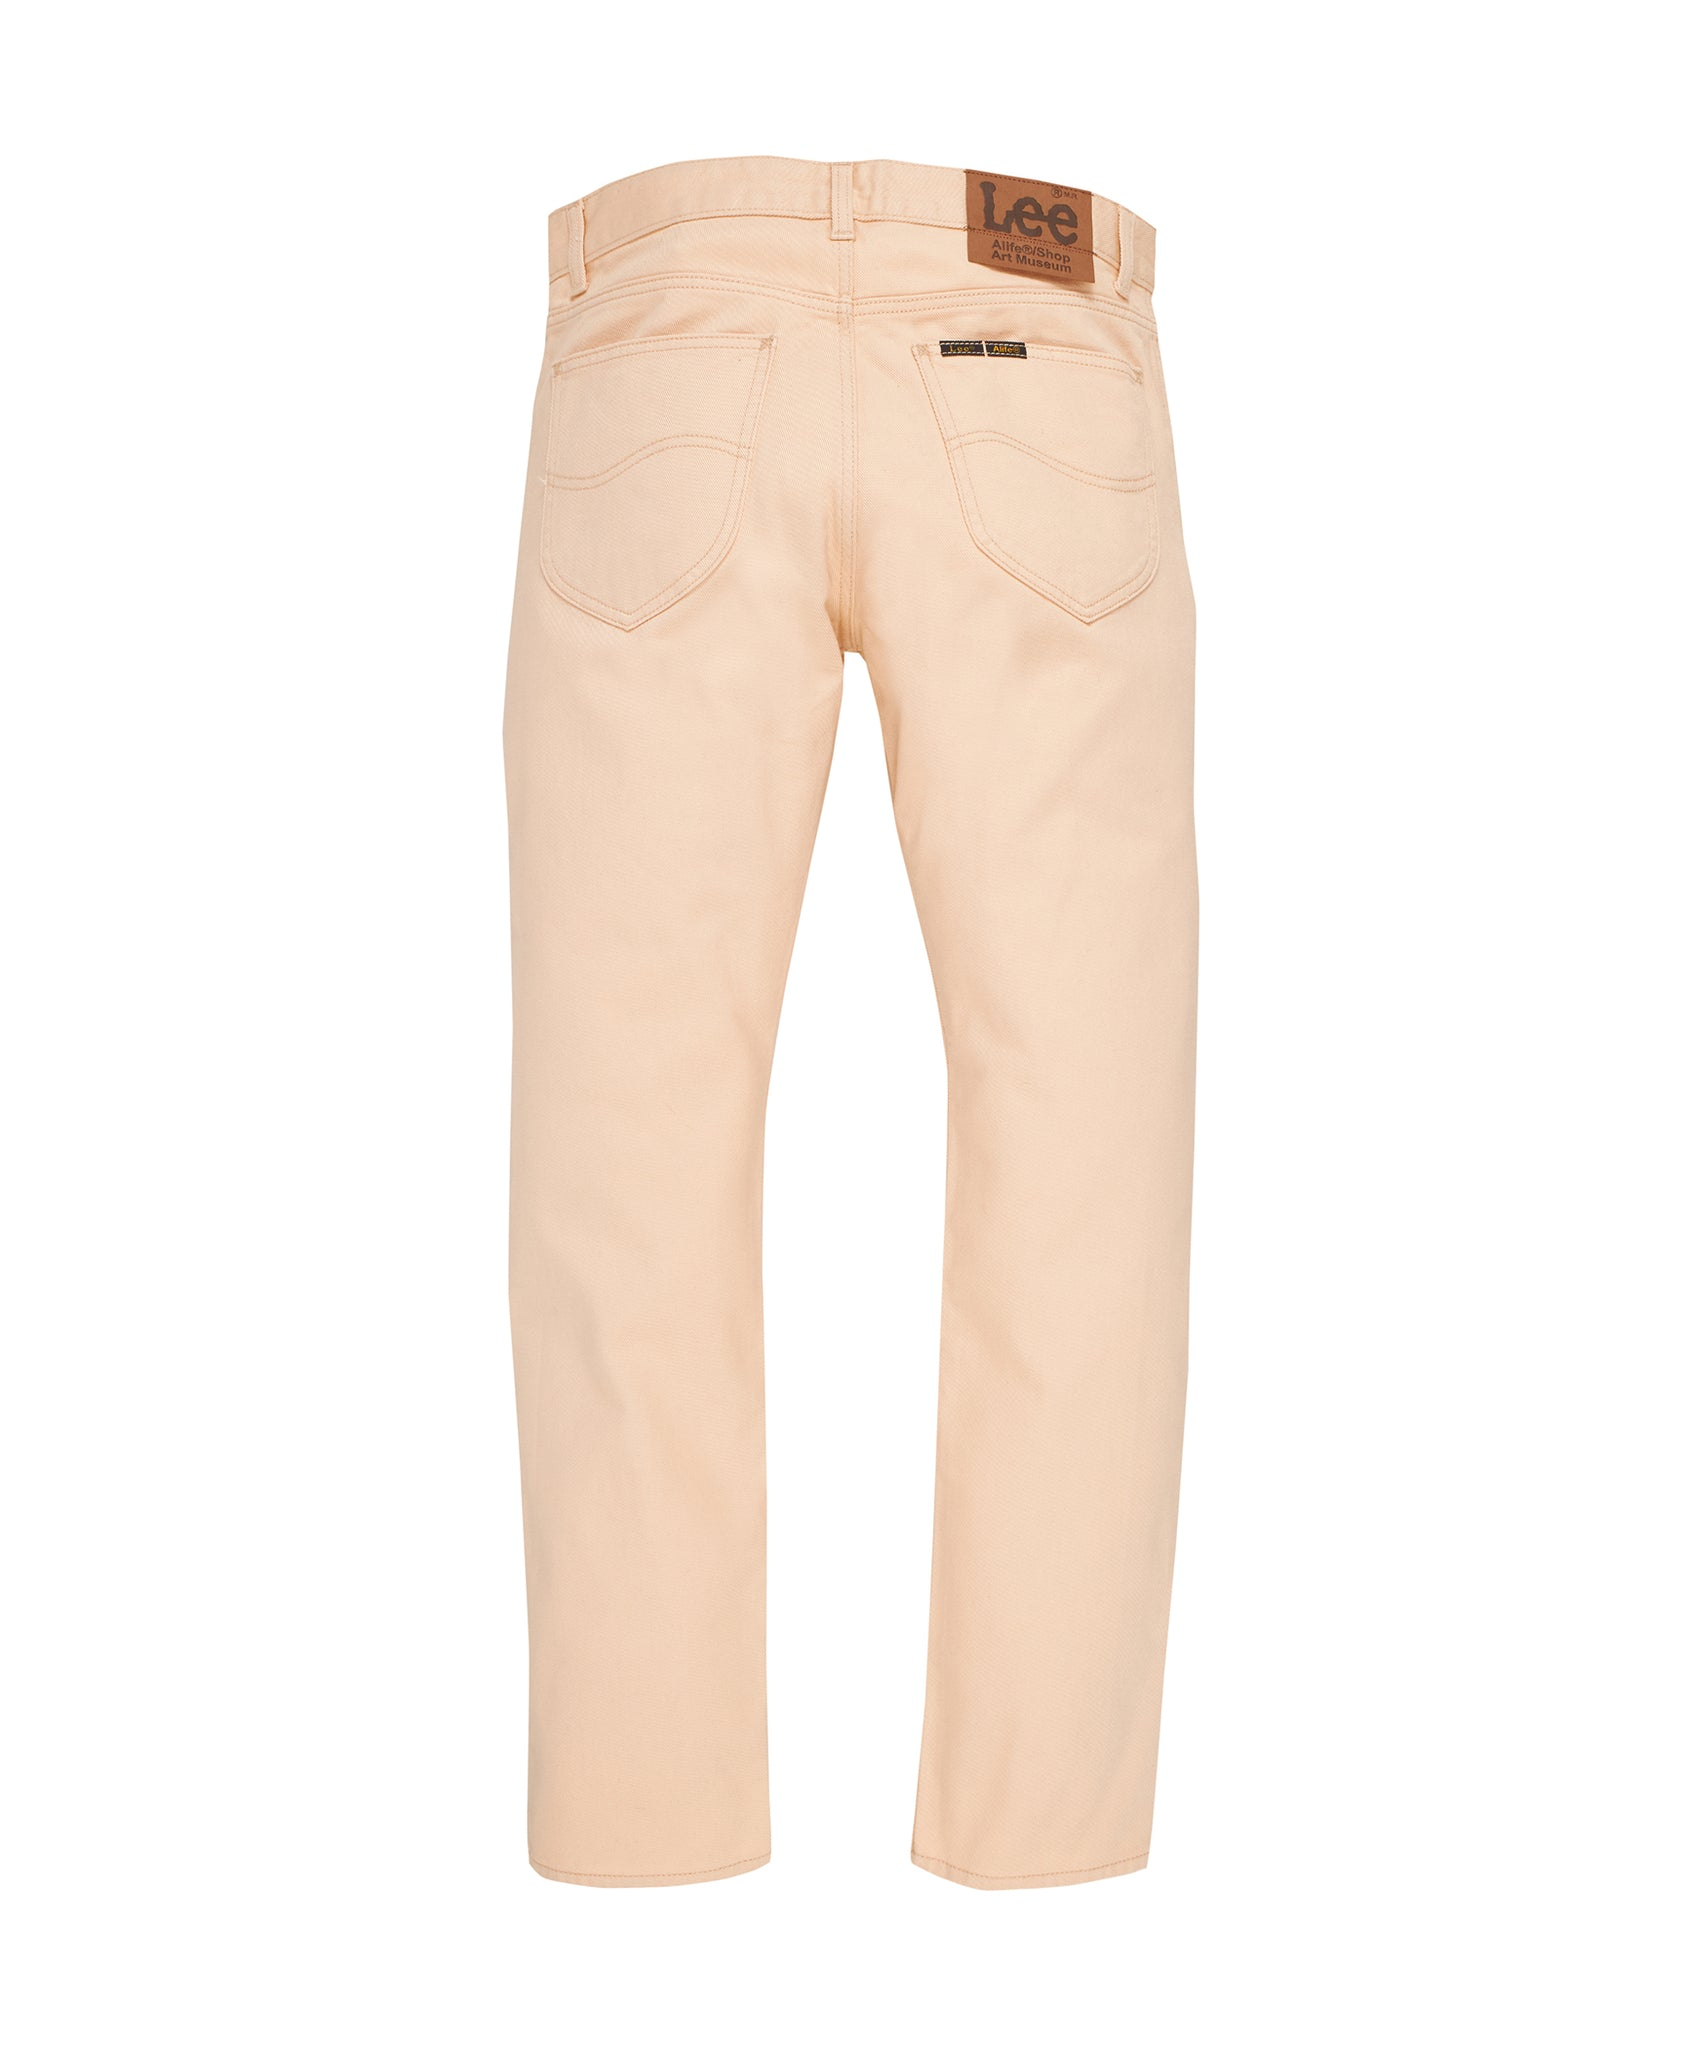 Alife/Lee Colored Cotton Twill Pant in Beige rear view